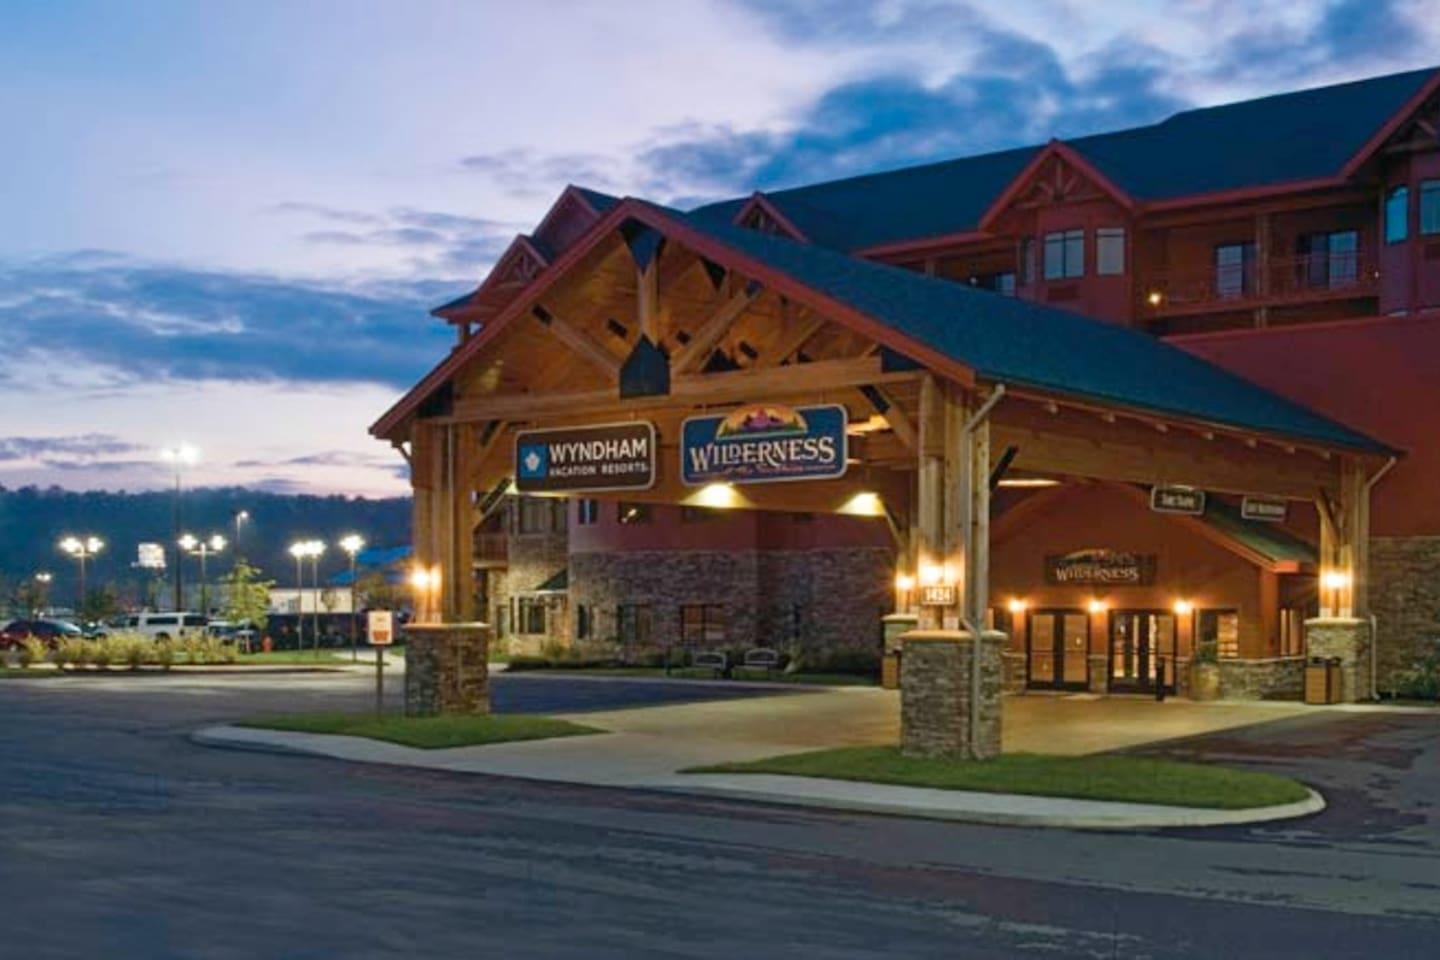 Sevierville Convention Center located on property!